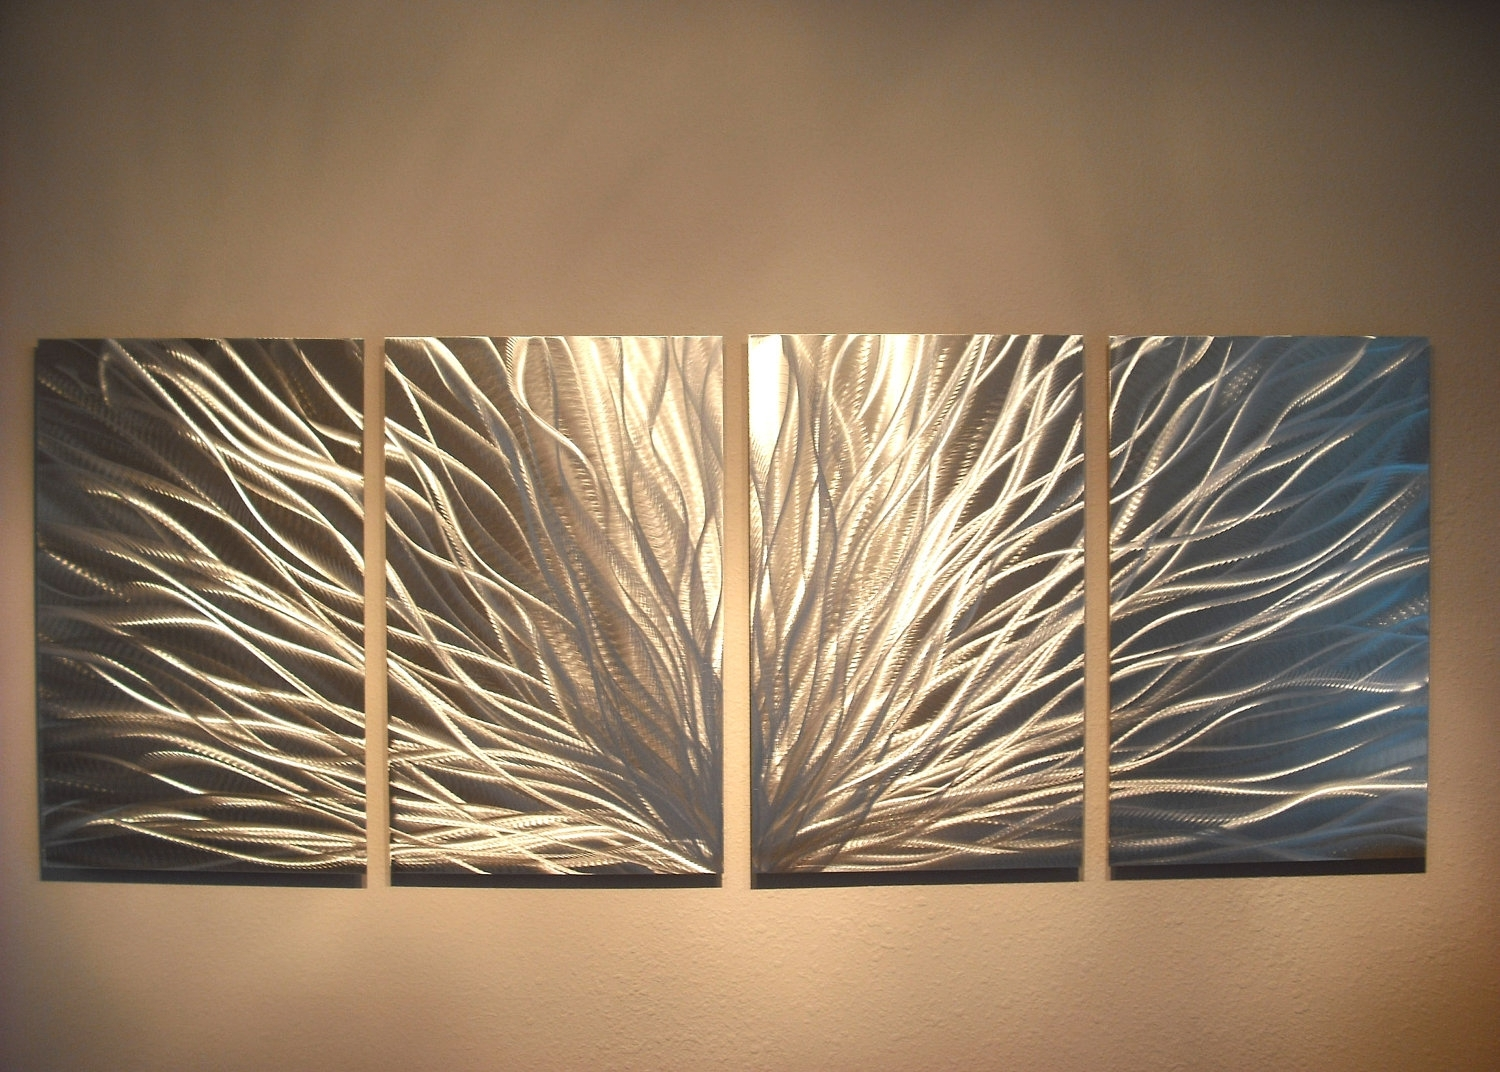 Radiance – Abstract Metal Wall Art Contemporary Modern Decor With Recent Wall Art Metal (View 16 of 20)